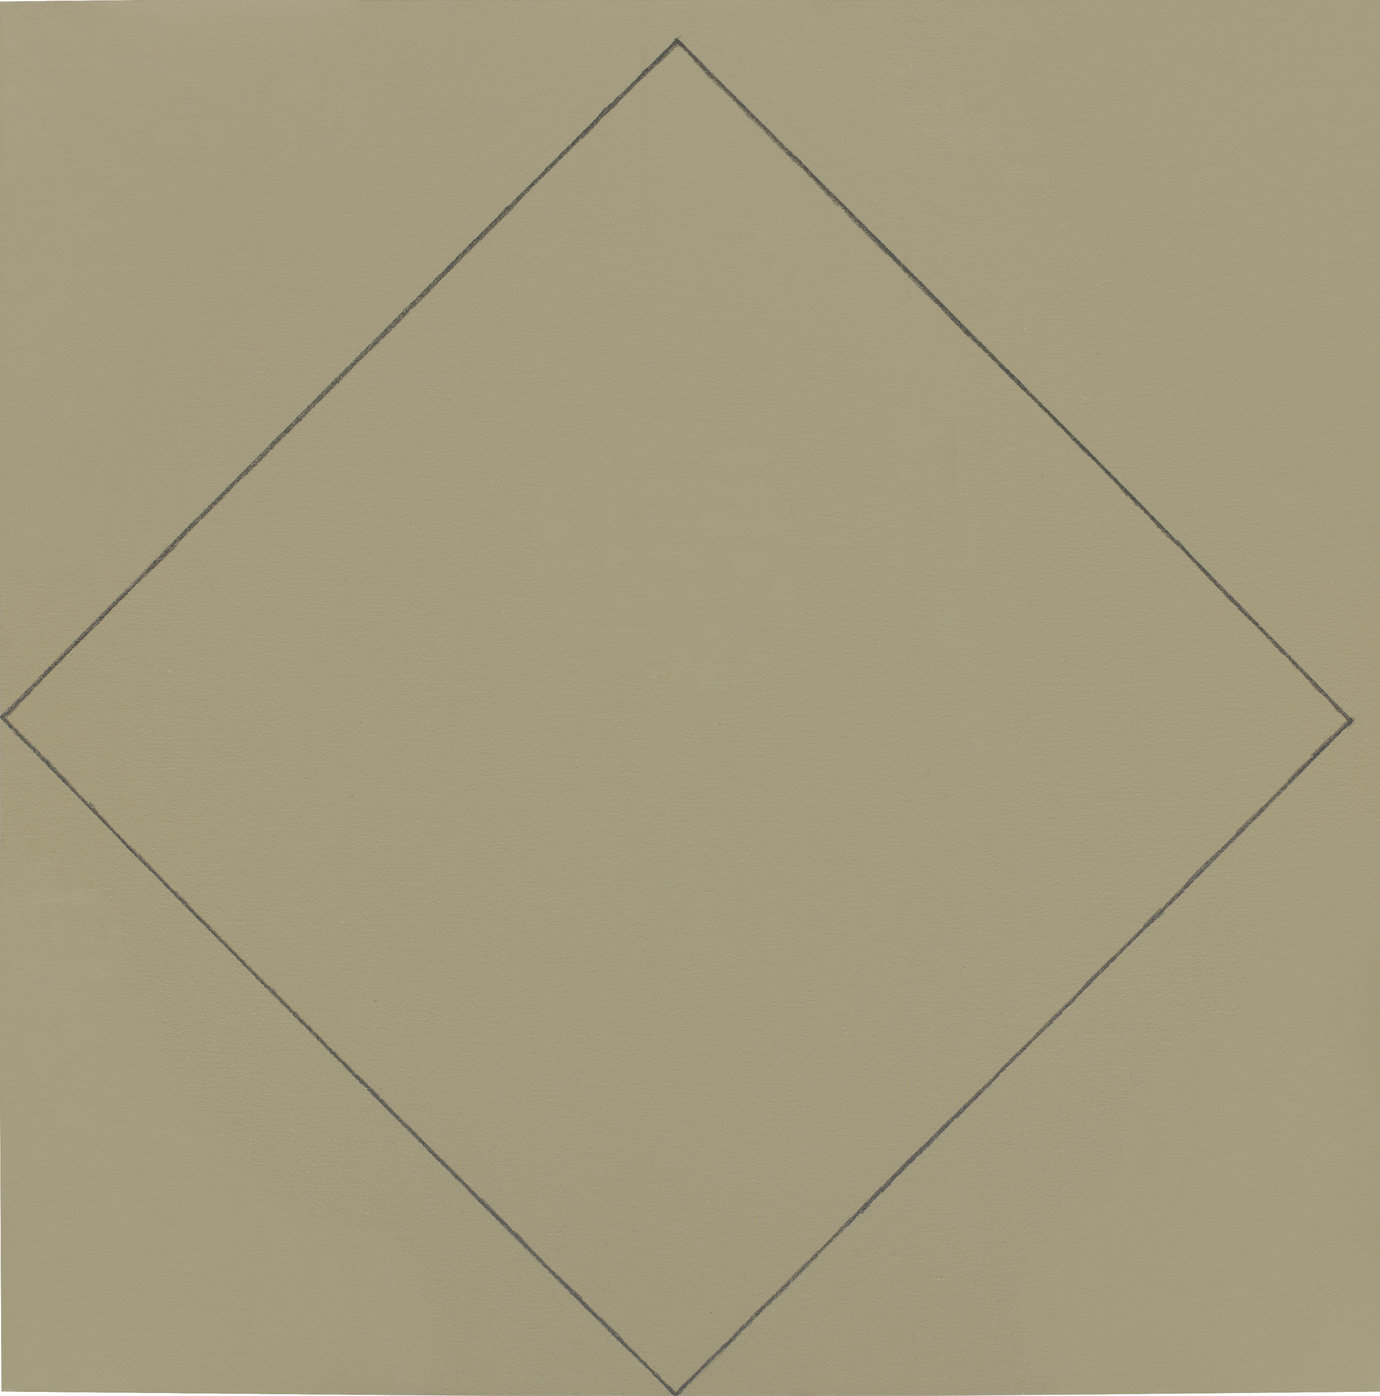 ", 1974. acrylic on canvas, 36"" x 36"" (91.4 cm x 91.4 cm)."